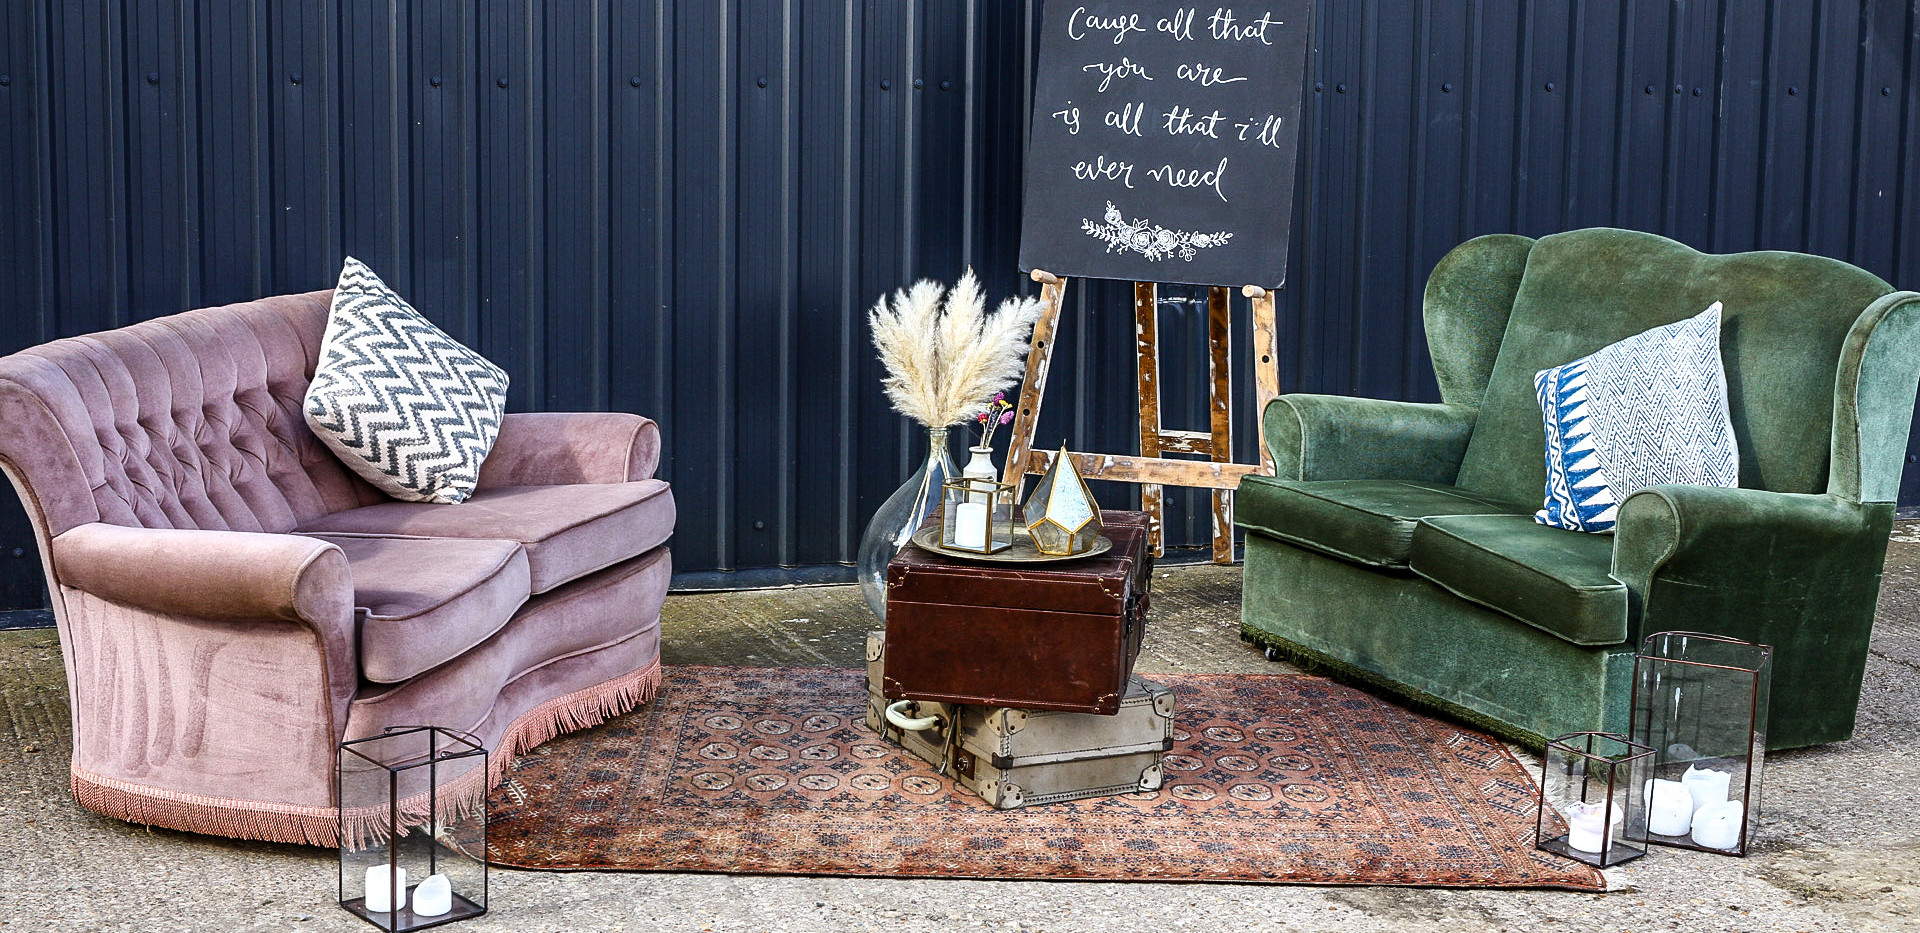 Vintage Sofas - Boho Chill Out Area